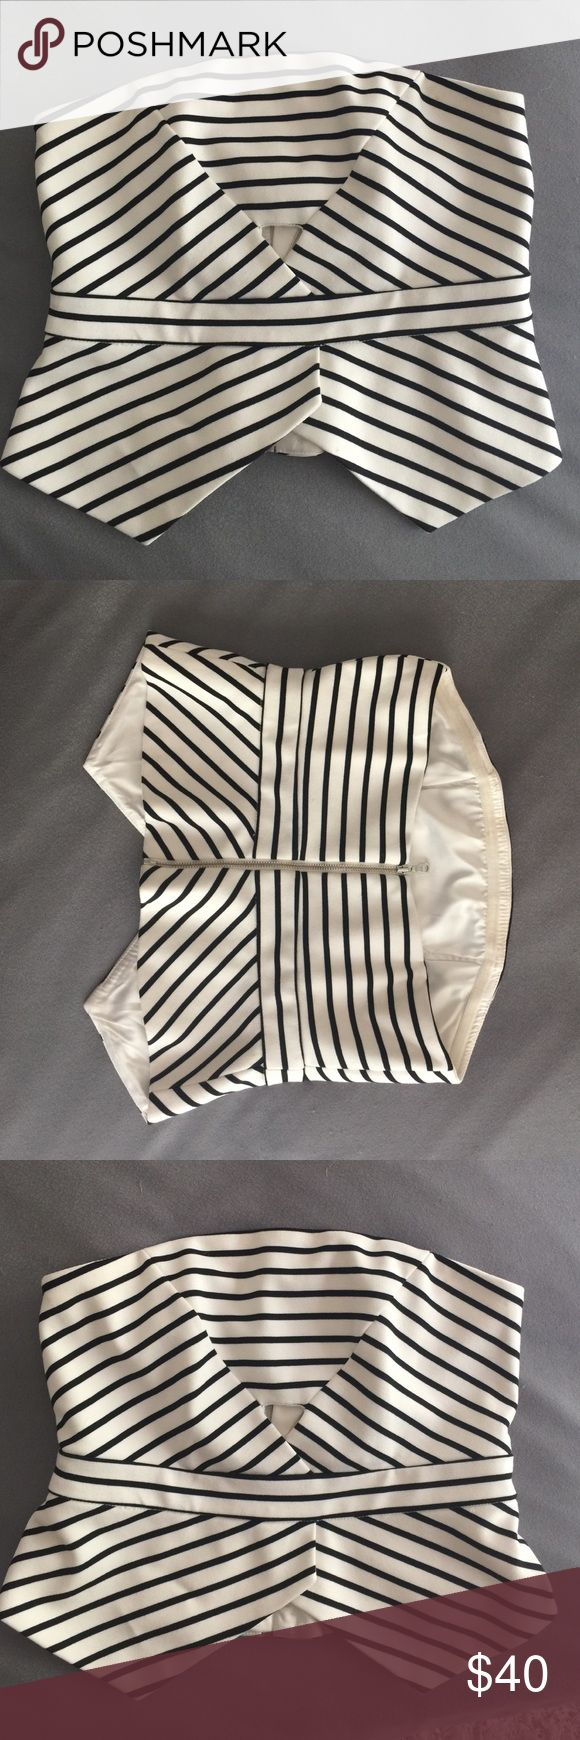 Bardot strapless top White and navy blue stripped Bardot top. Has a corset type fit and is very flattering. Awesome condition. Looks great with jeans and a wedge/heel! 4/S Bardot Tops Crop Tops